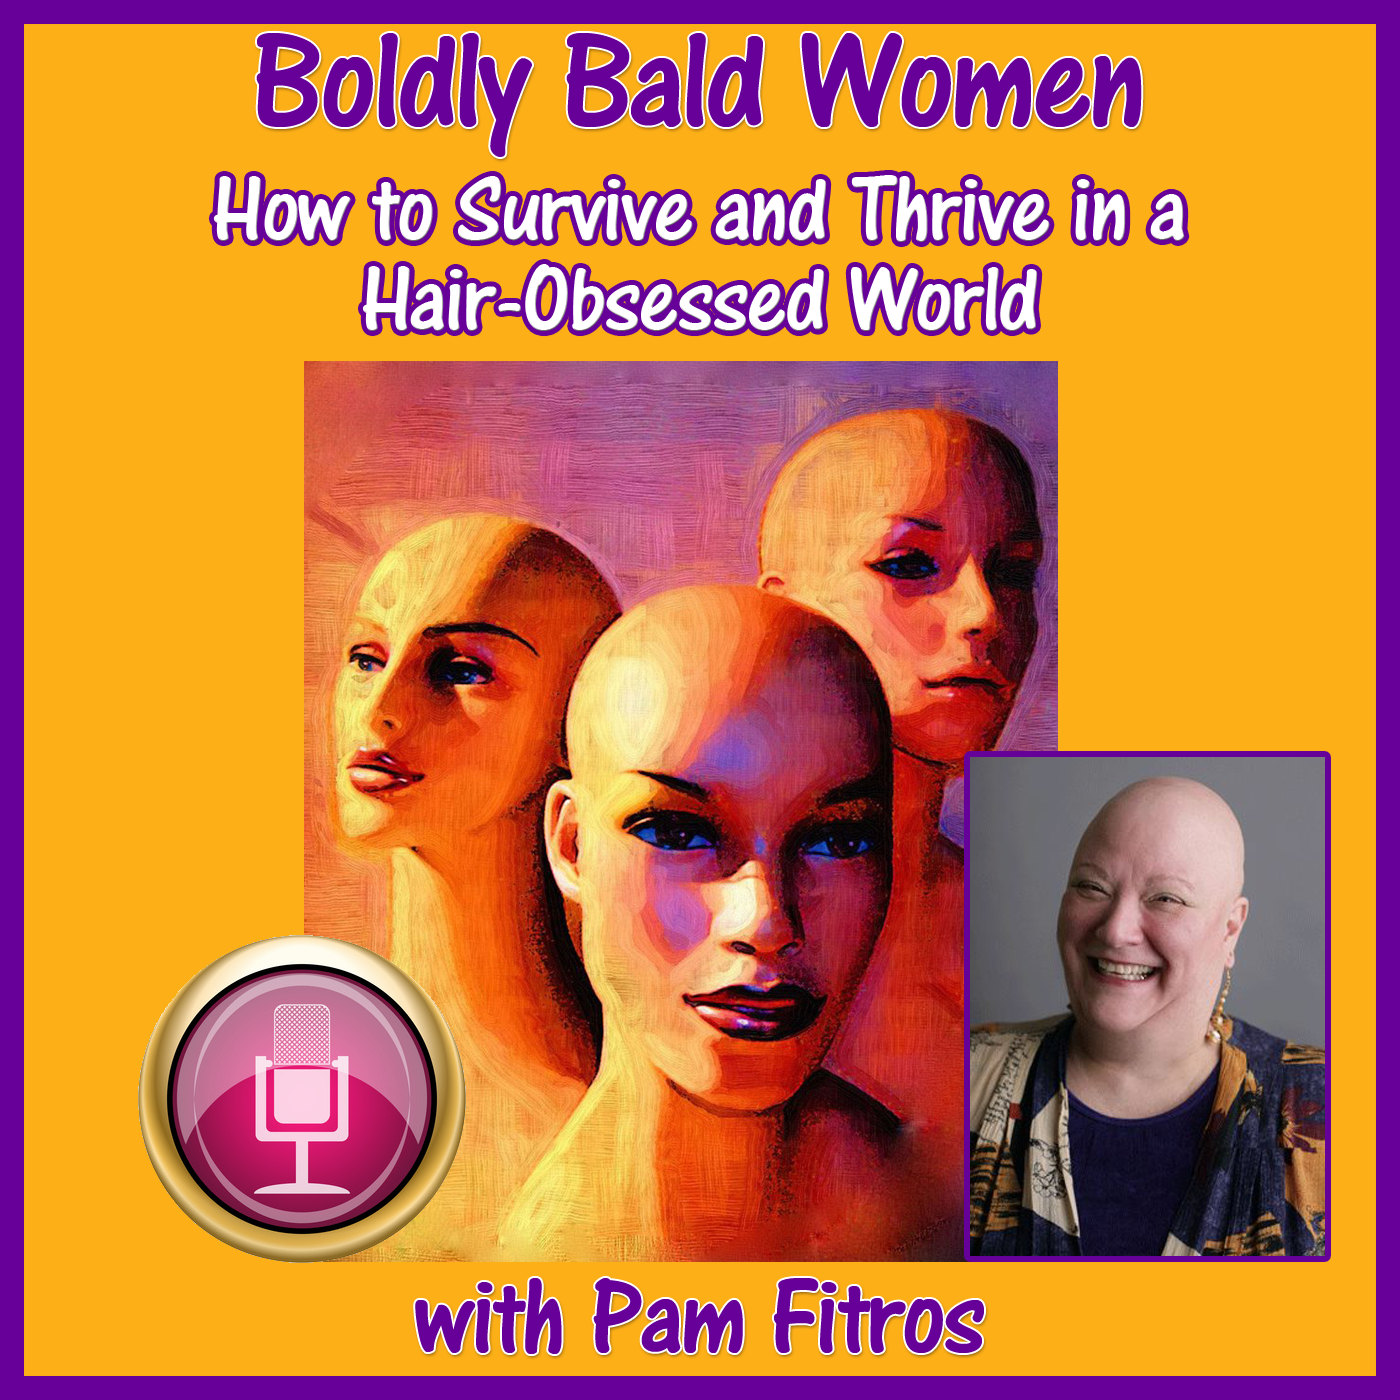 Boldly Bald Women